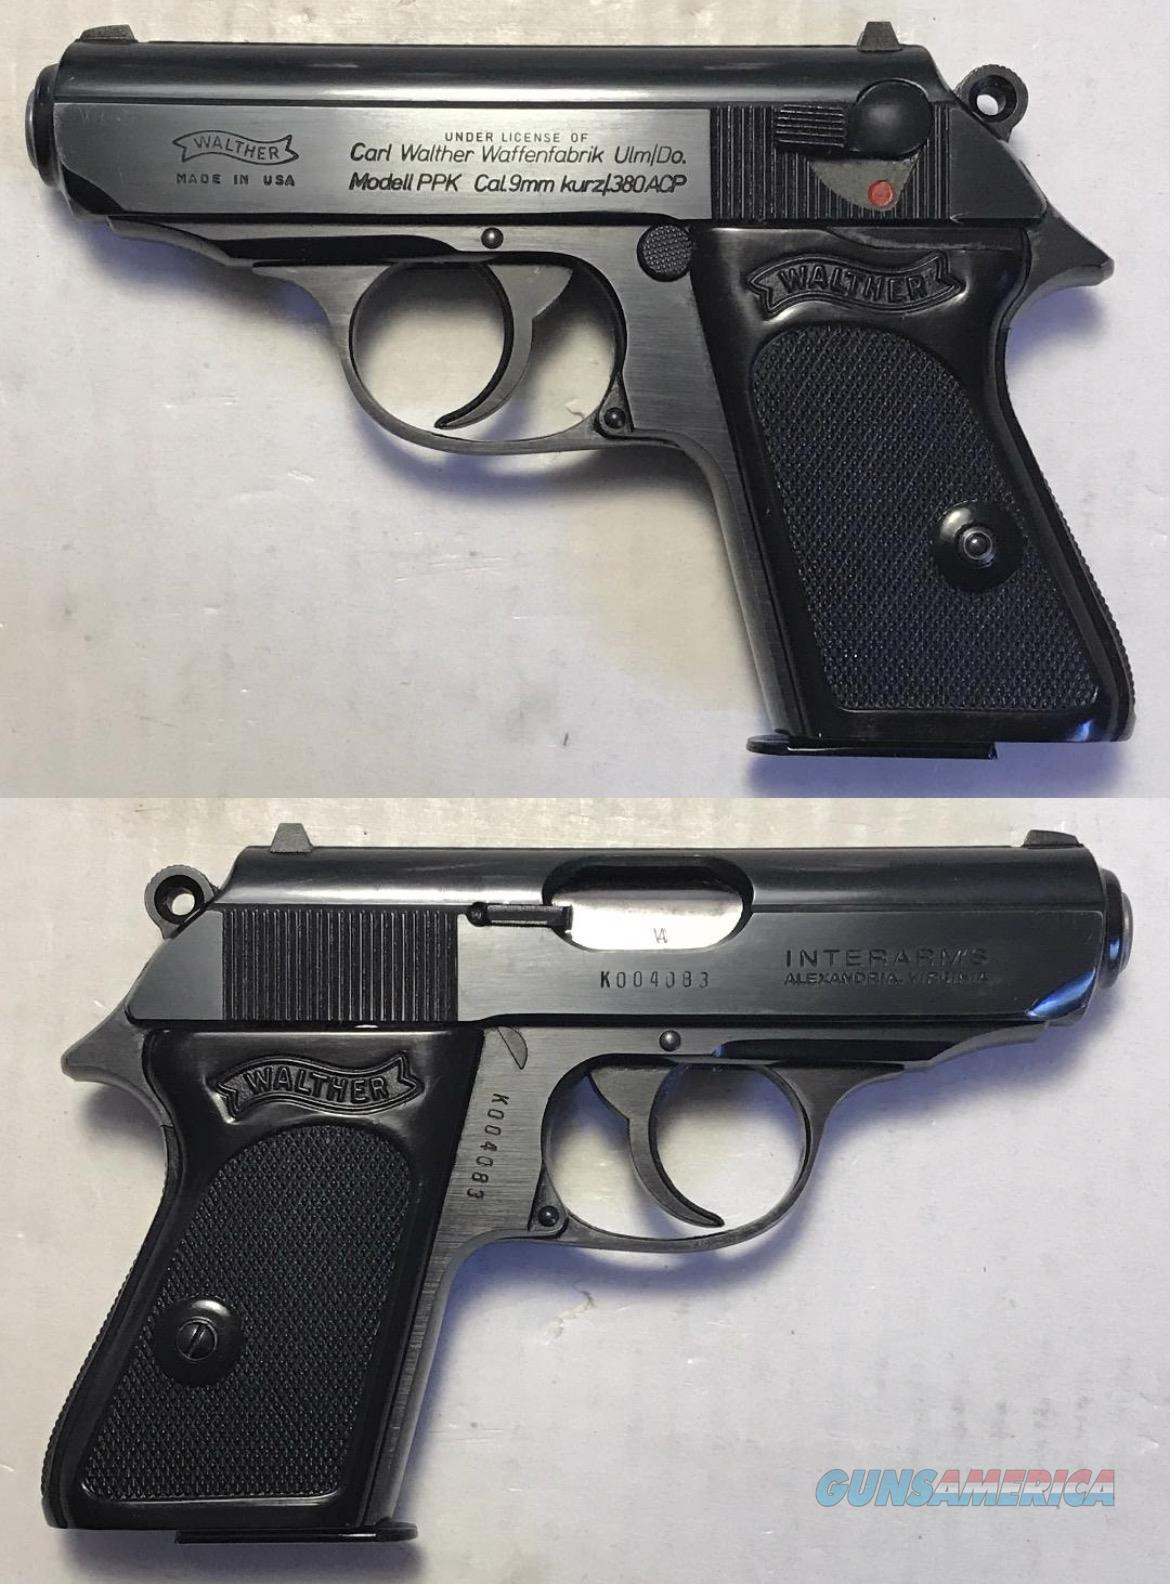 Walther/Interarms Model PPK Blue .380  Guns > Pistols > Walther Pistols > Post WWII > PPK Series